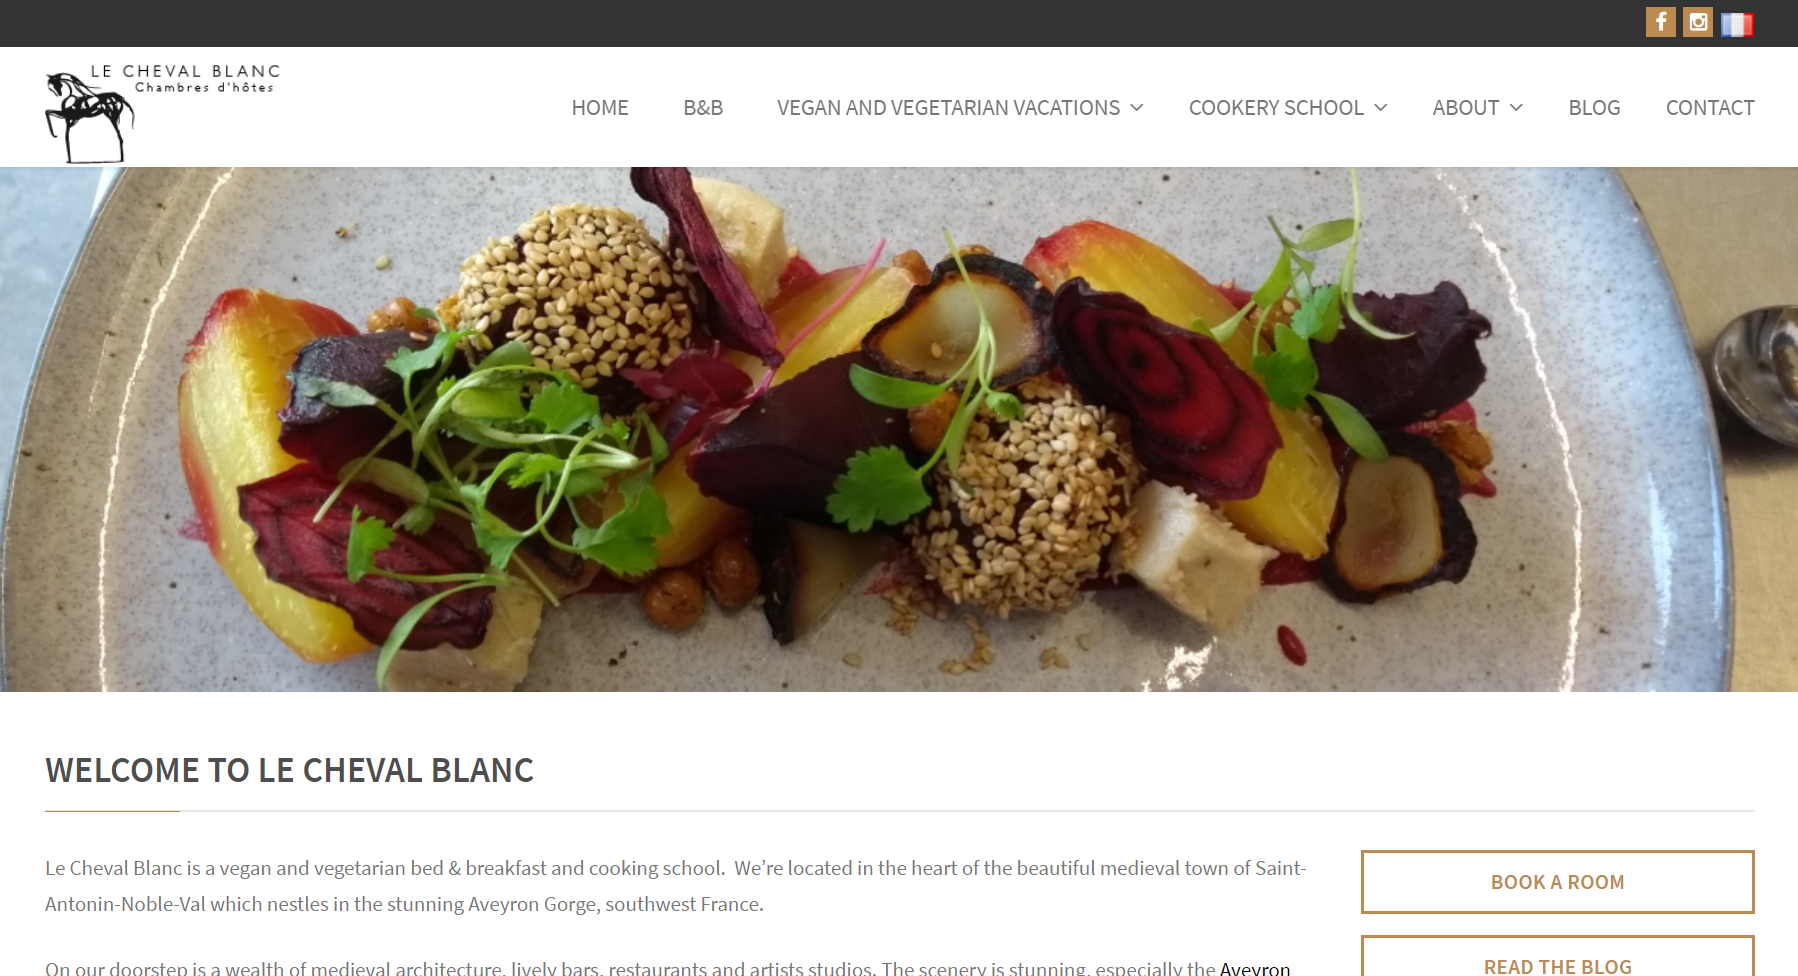 The homepage of the Le Cheval Blanc B&B website